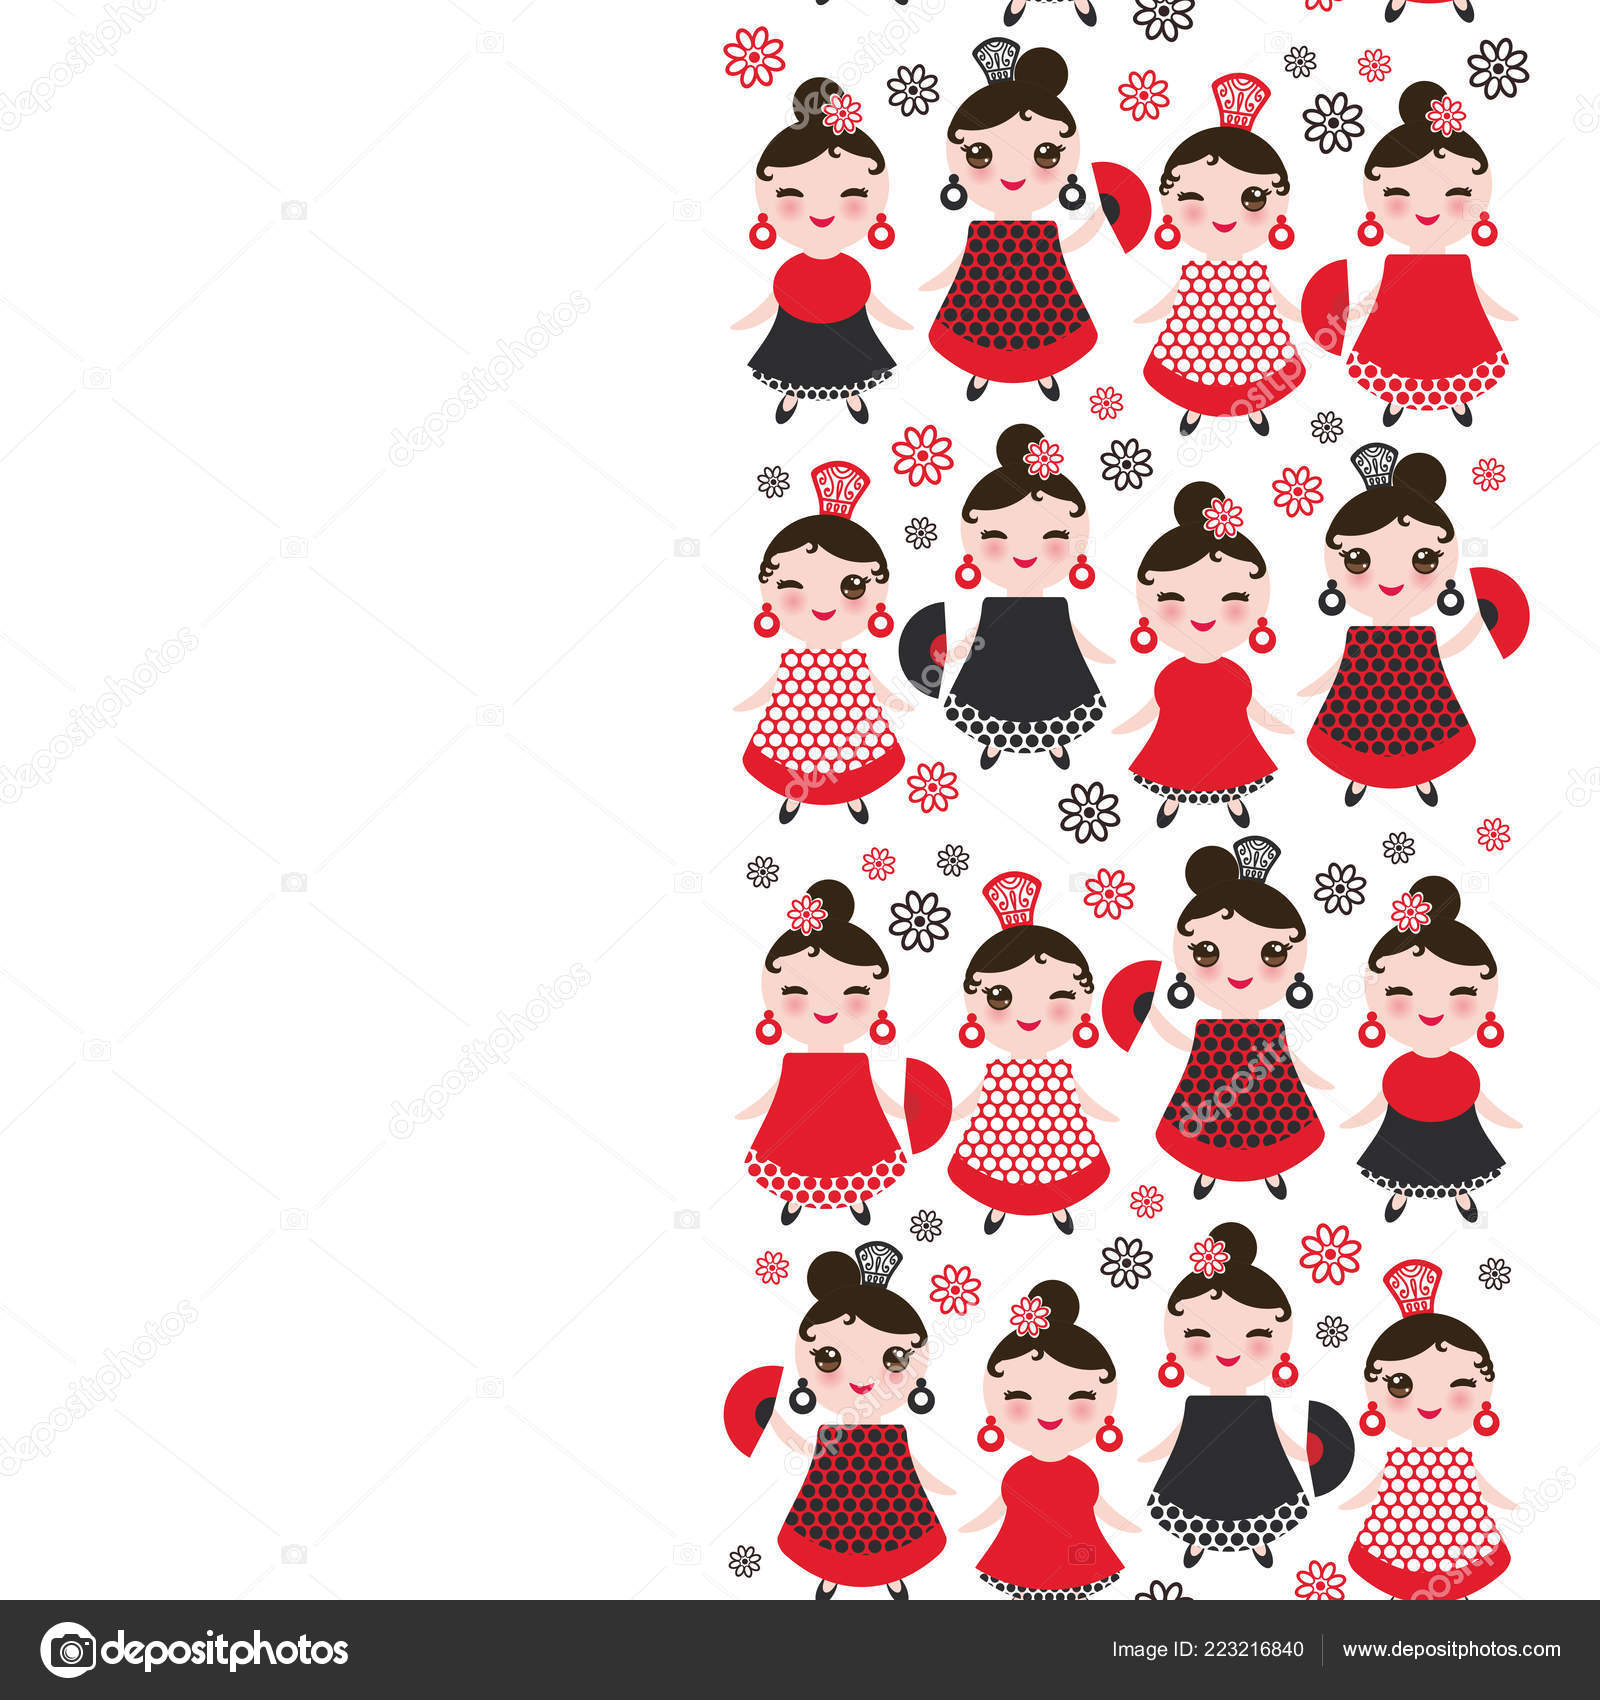 6f3101005704 Spanish Woman flamenco dancer. Kawaii cute face with pink cheeks and  winking eyes. Gipsy girl, red black dress, polka dot fabric, on white  background banner ...